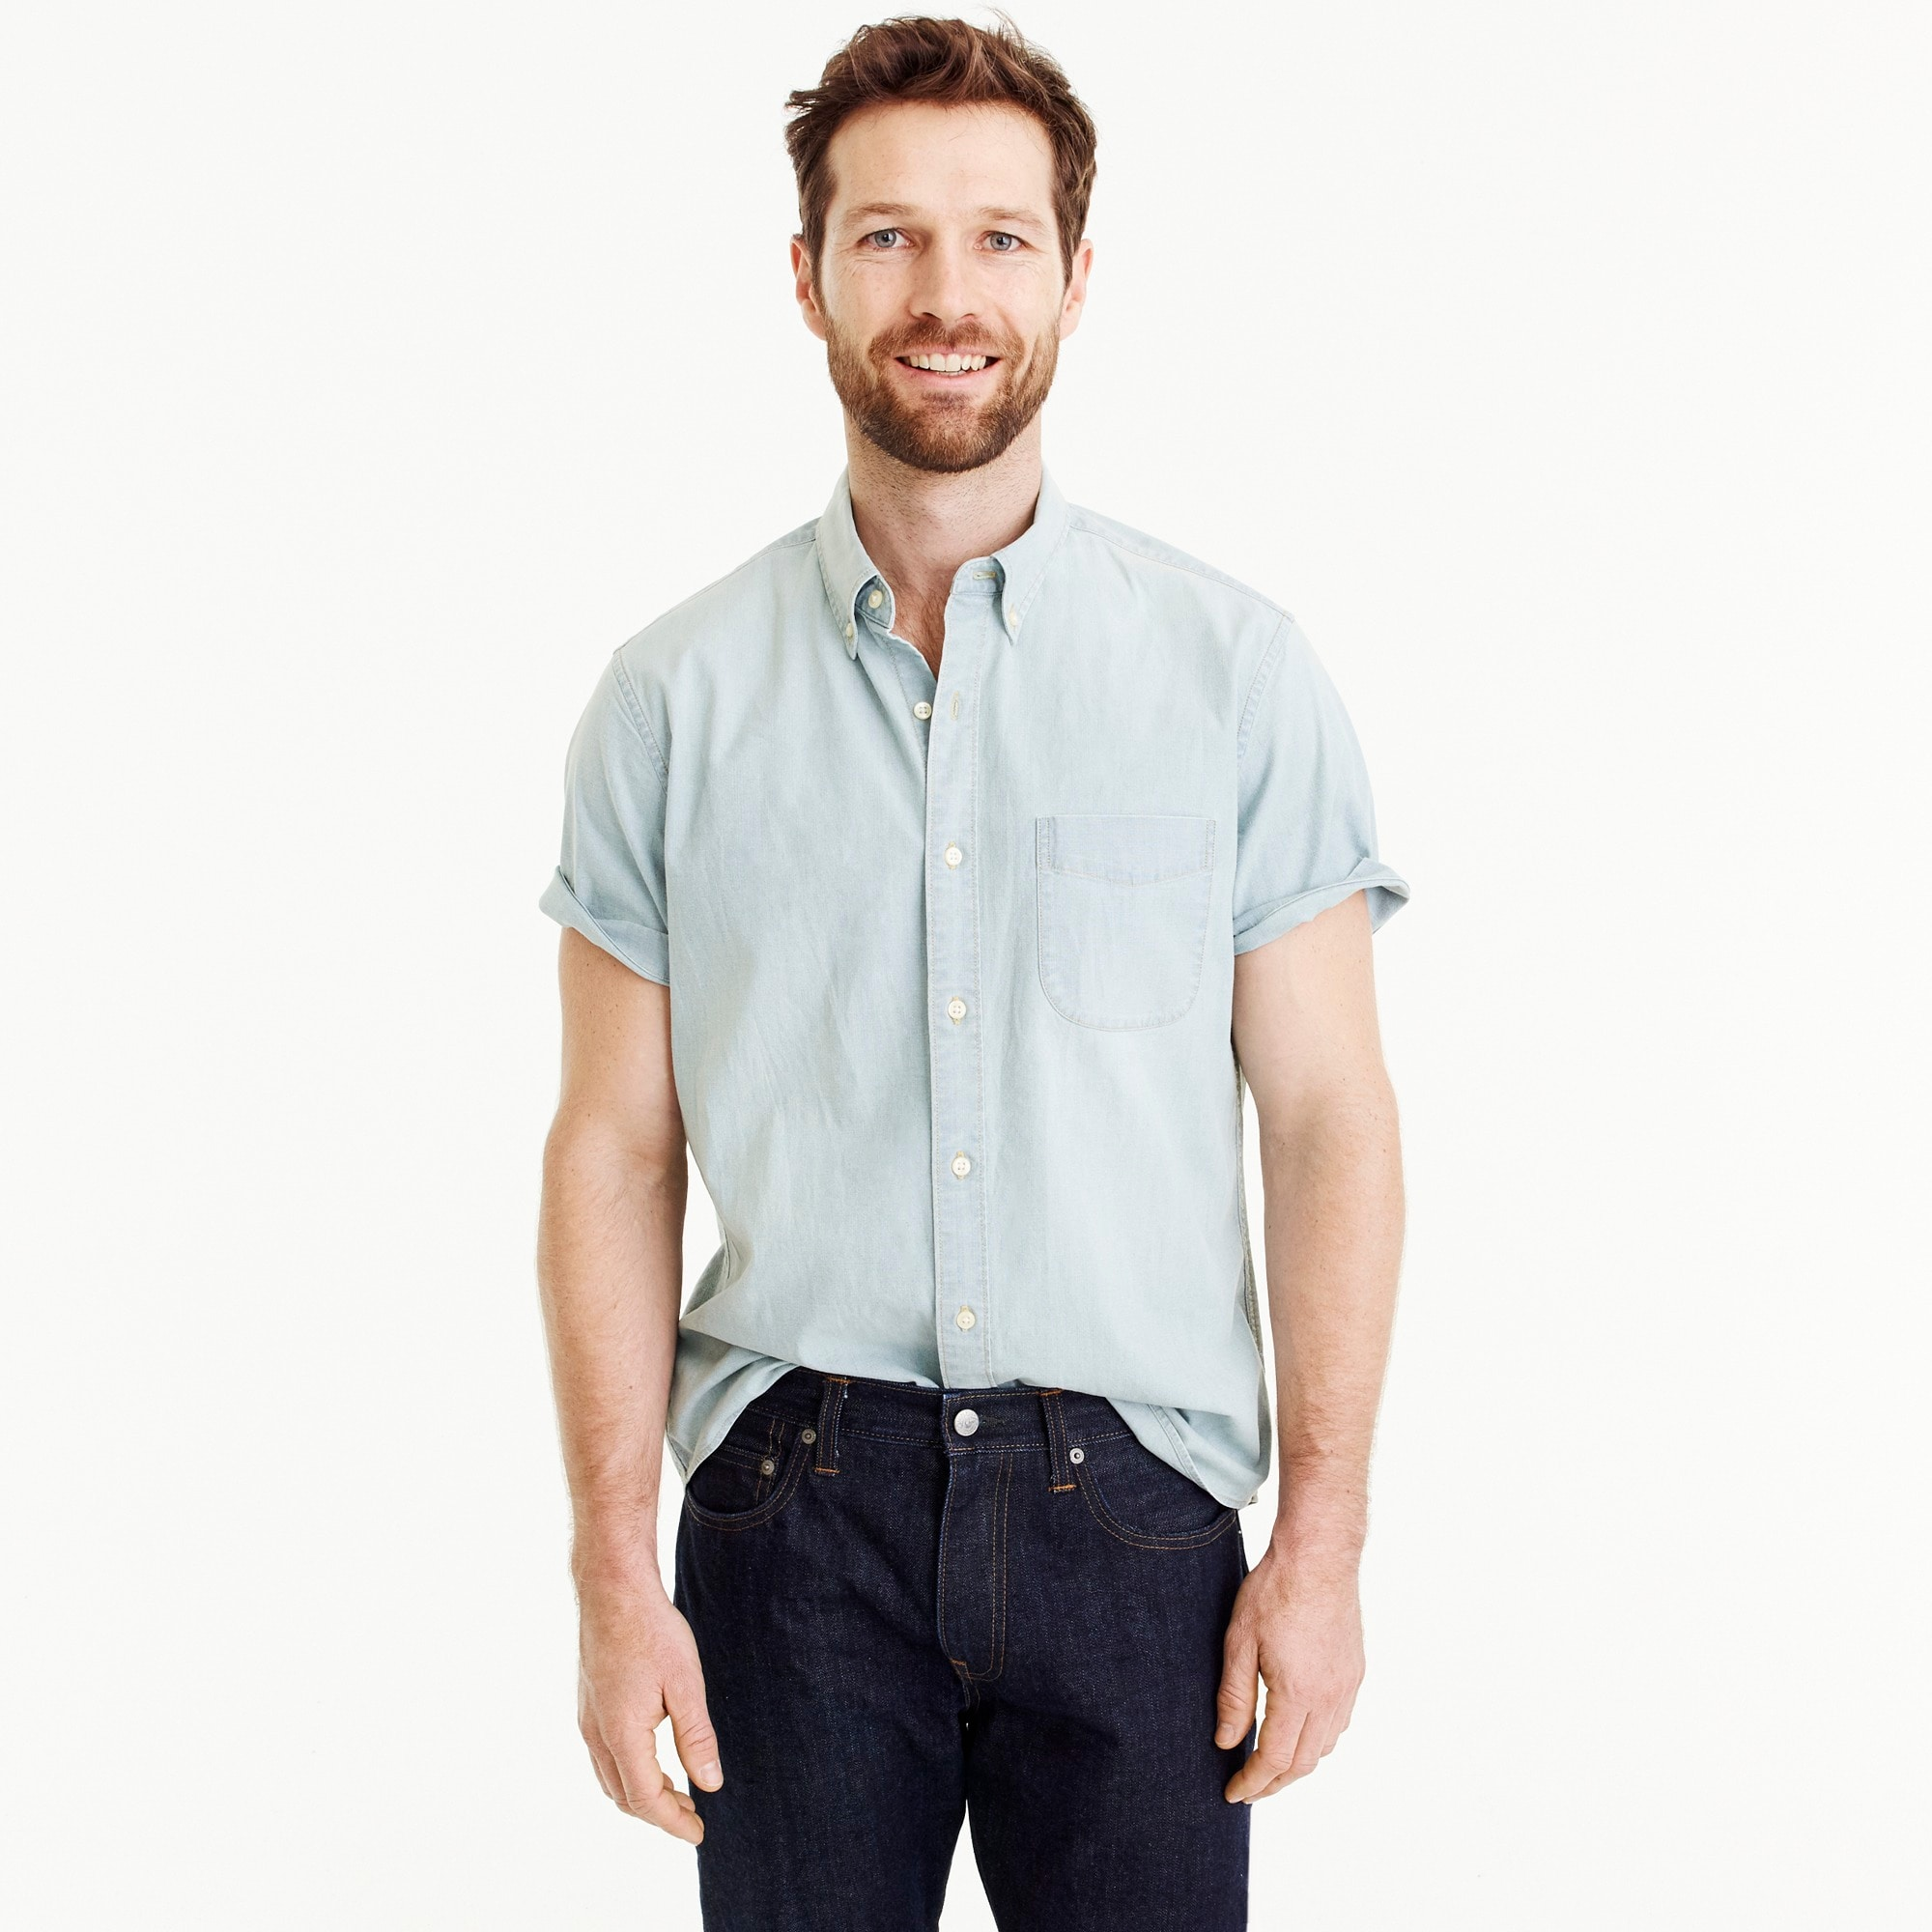 Image 1 for Tall stretch short-sleeve shirt in light wash chambray